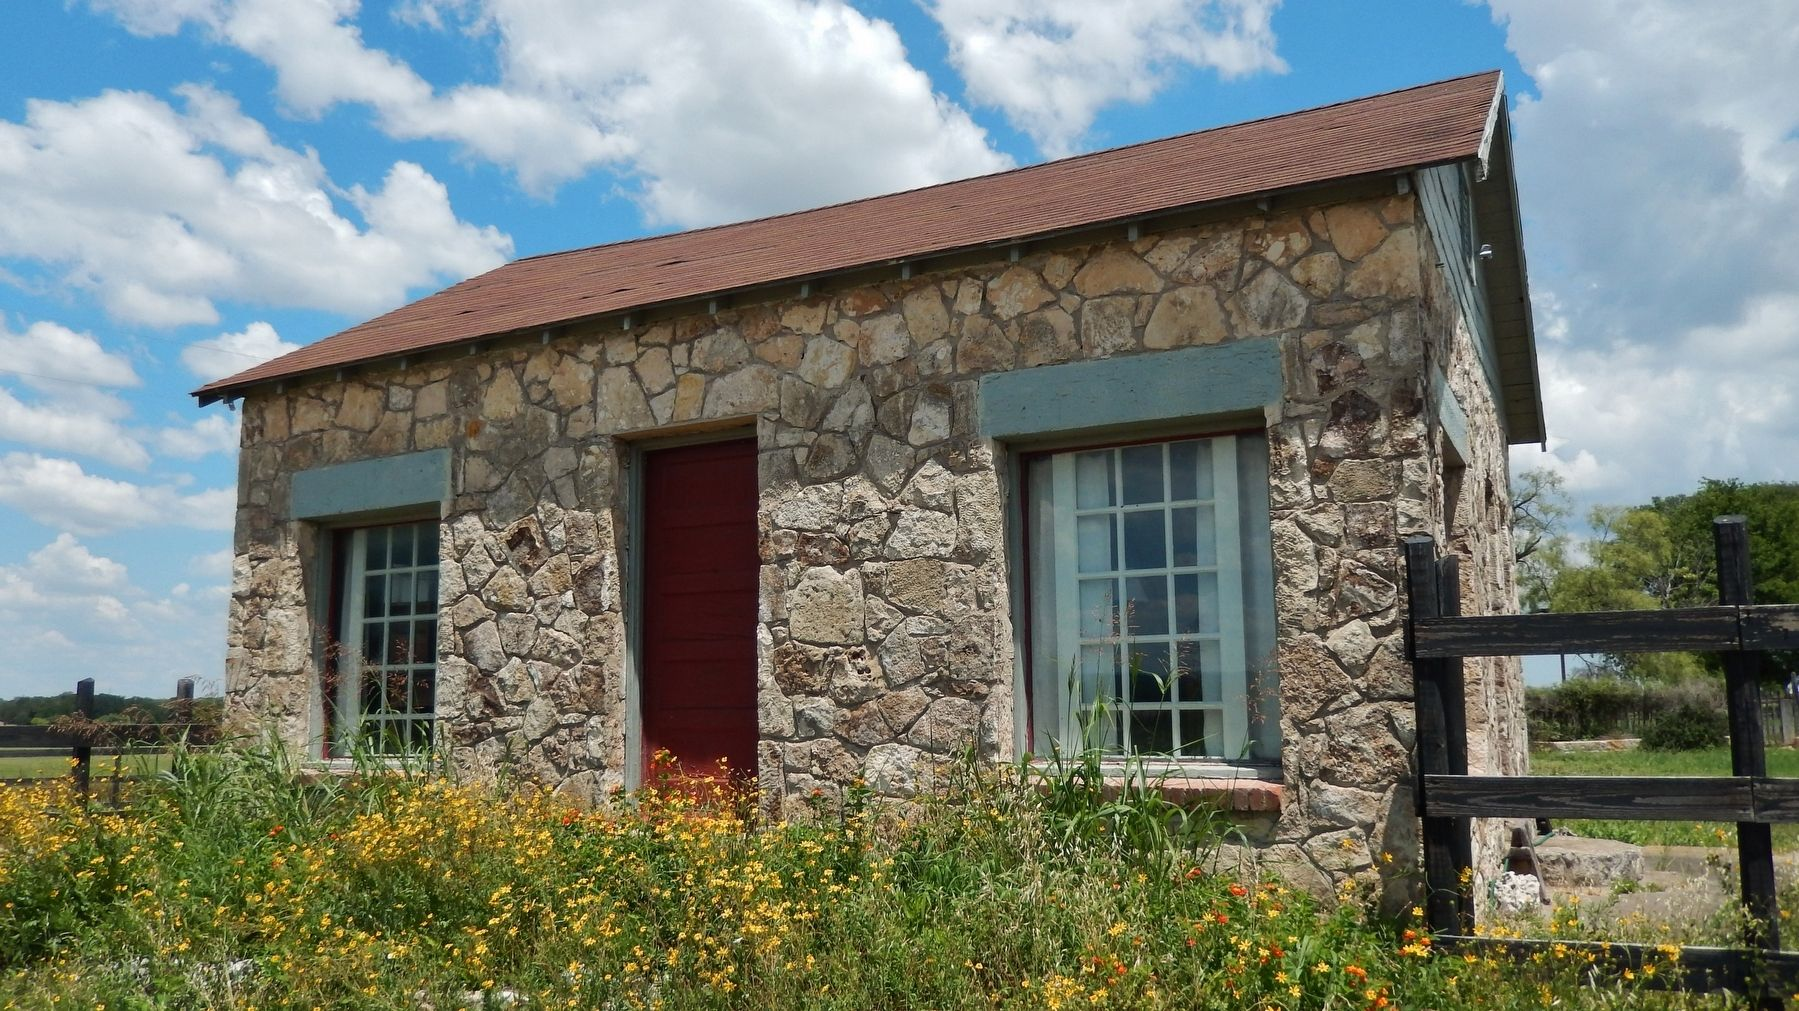 Apelt Armadillo Farm (<i>Stone house beside marker</i>) image. Click for full size.